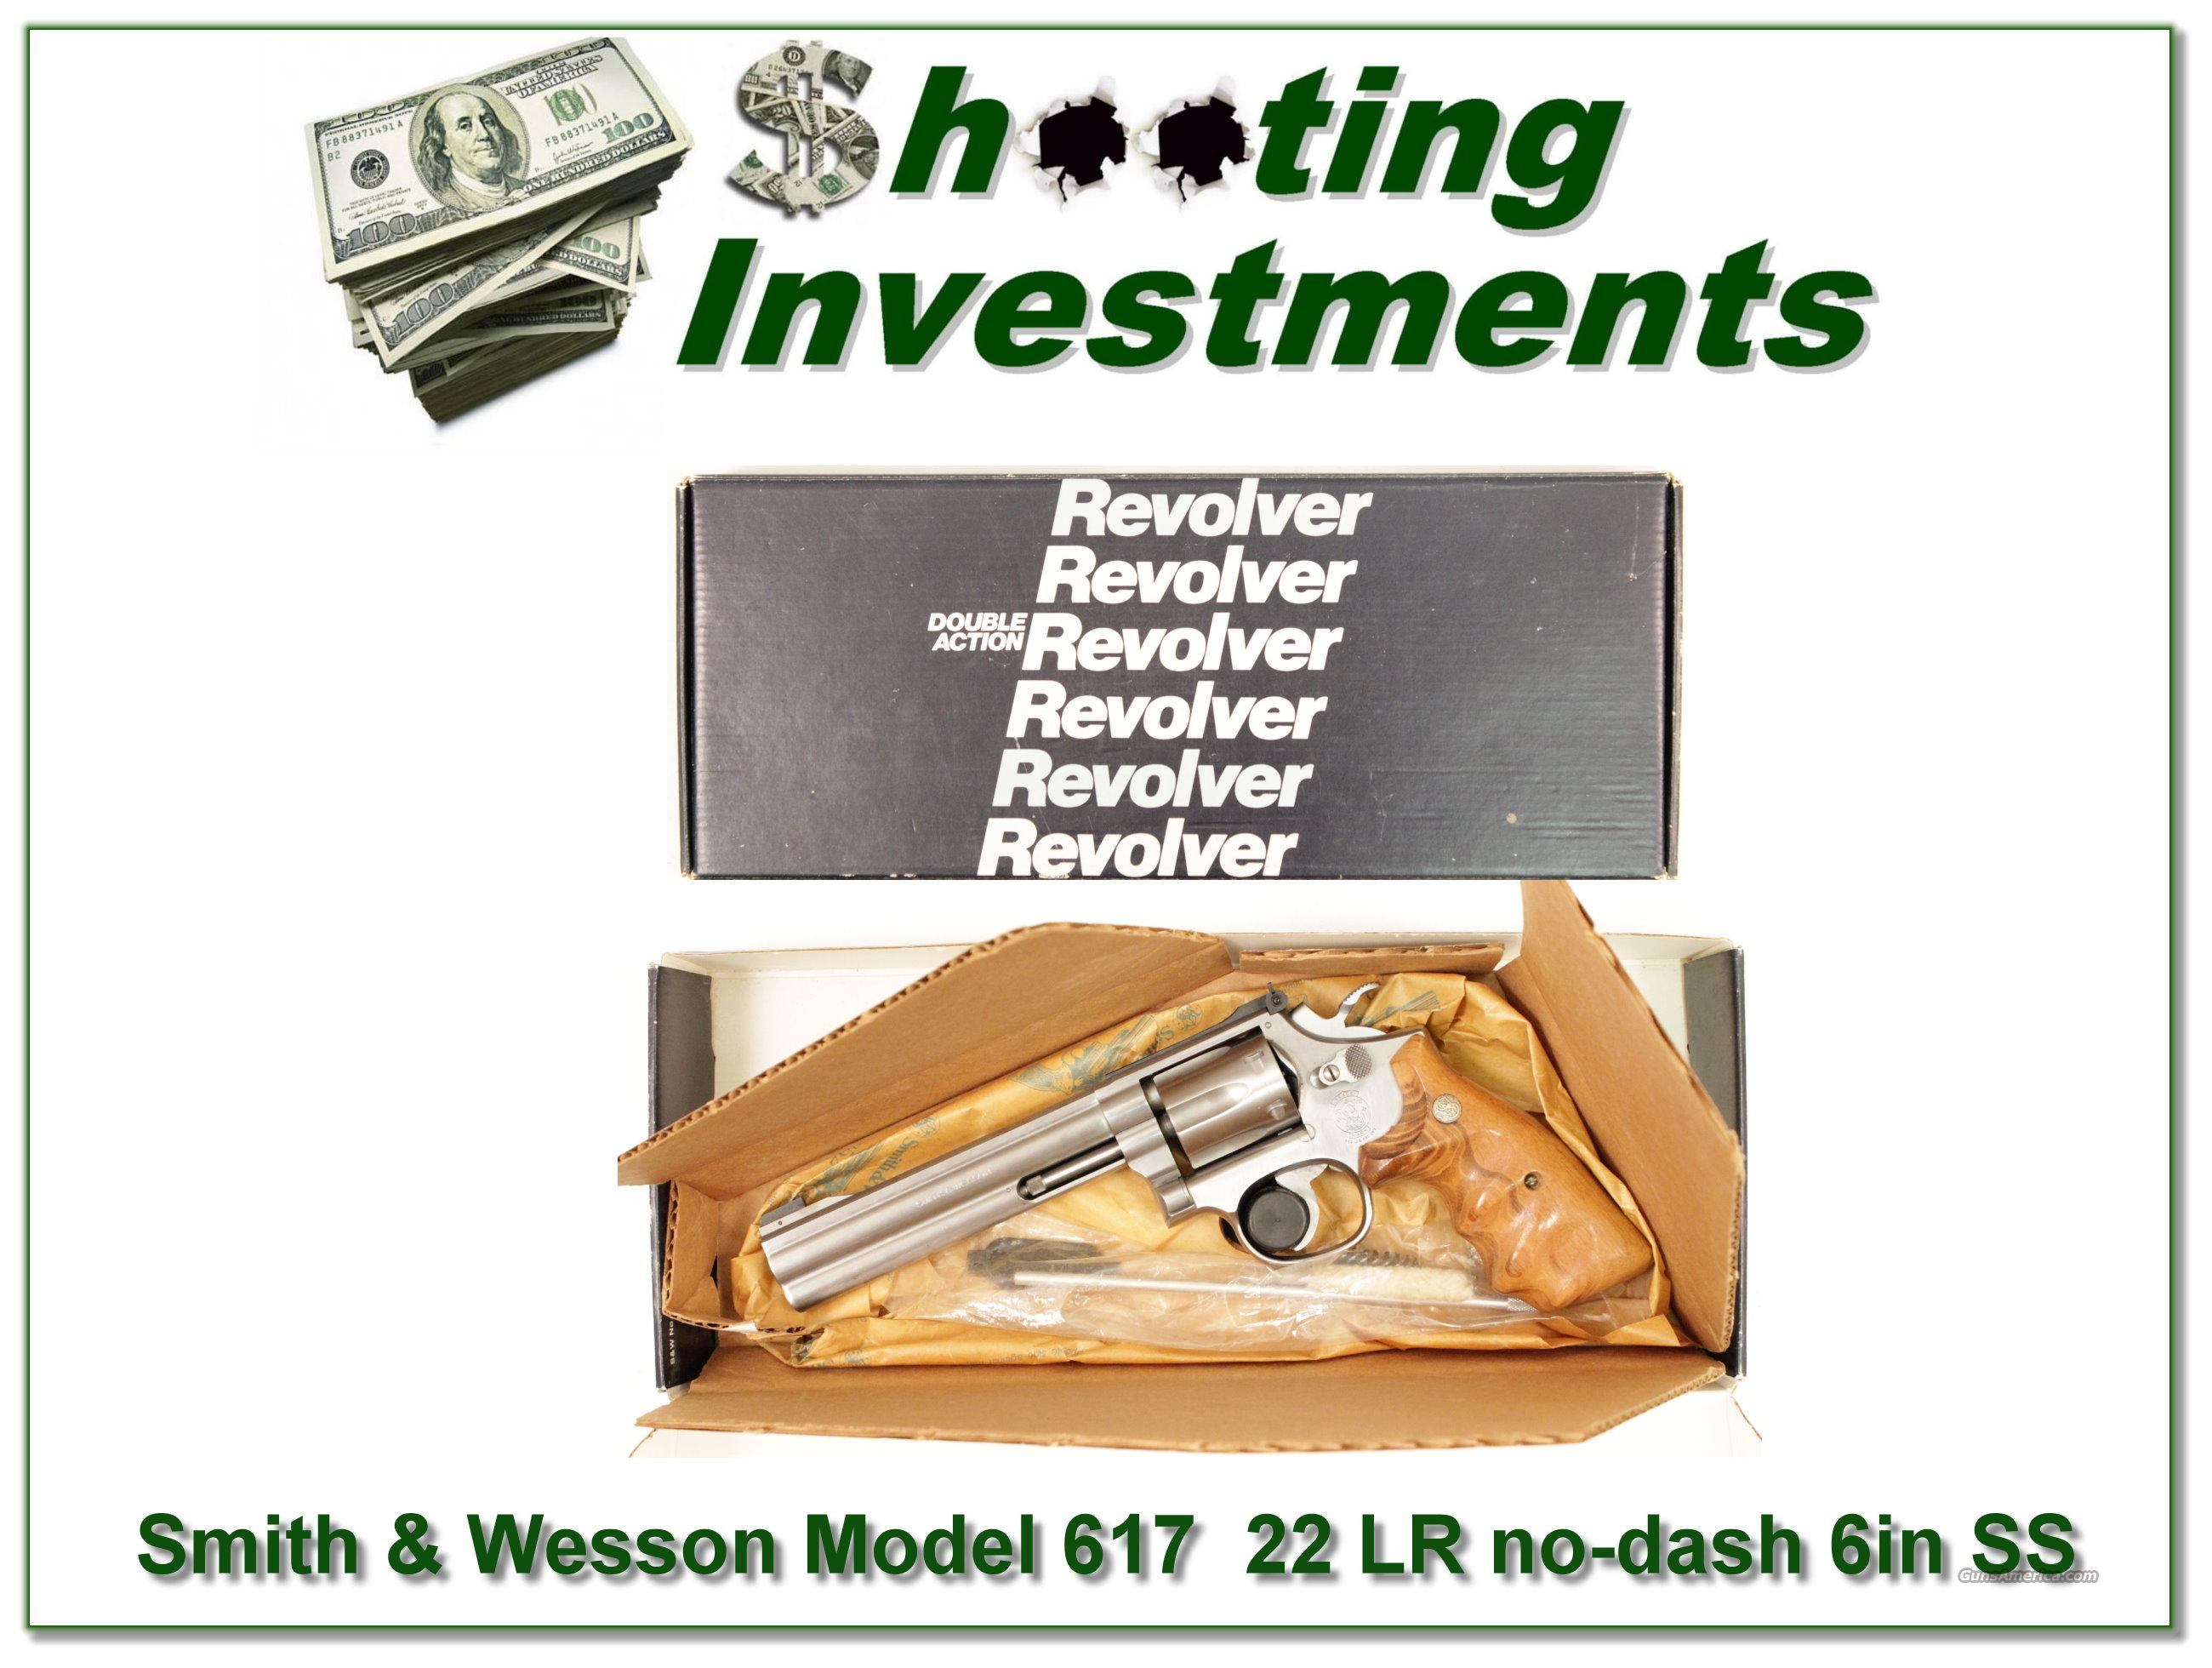 Smith & Wesson Model 617 No Dash 22 LR 6in Stainless  Guns > Pistols > Smith & Wesson Revolvers > Full Frame Revolver